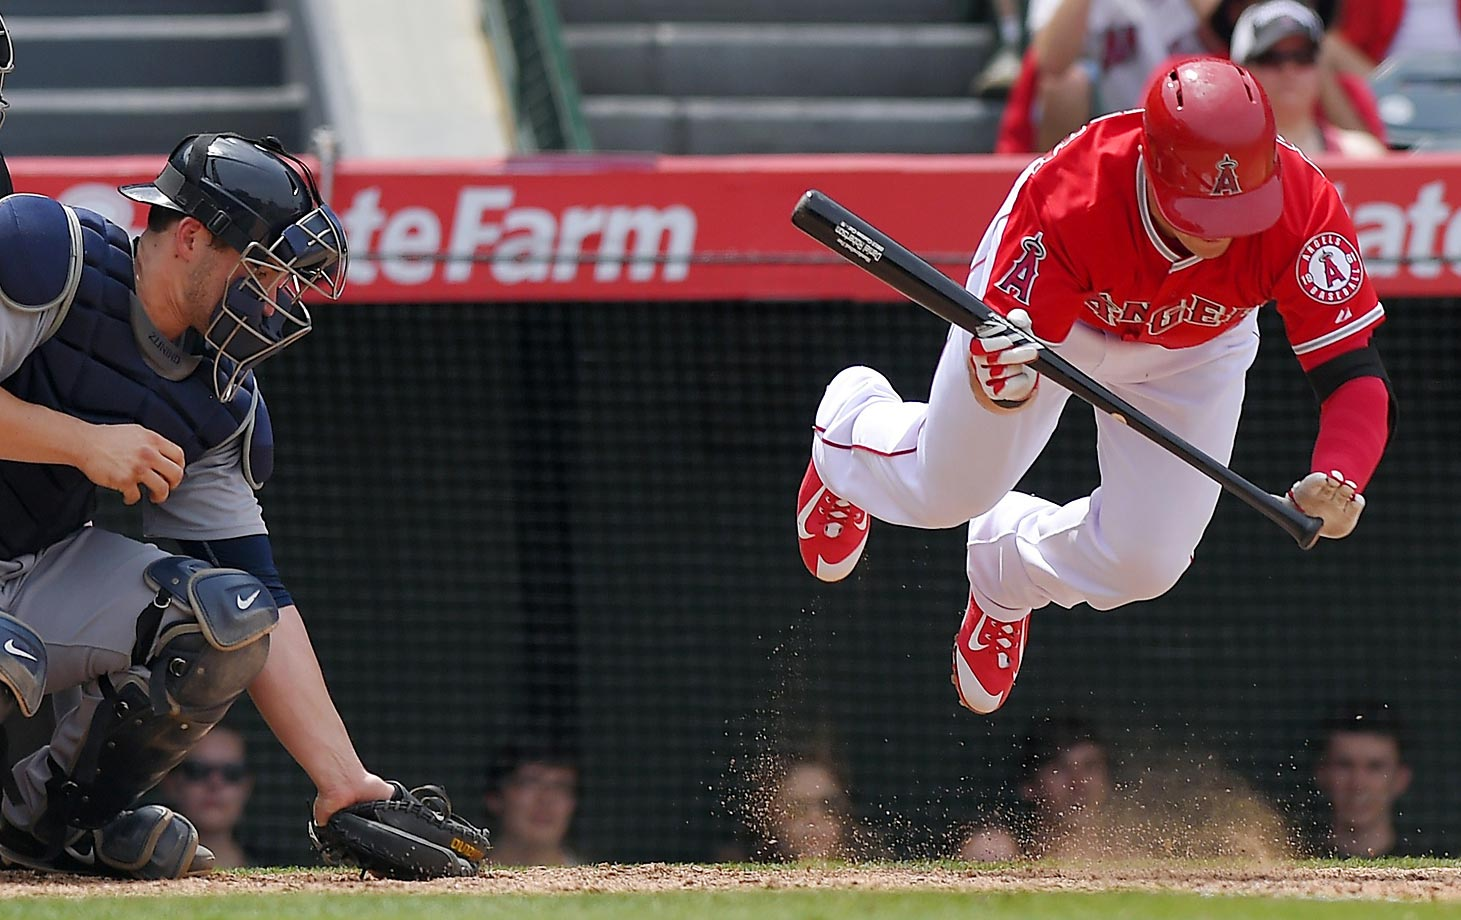 Daniel Robertson of the Los Angeles Angels jumps out of the way of a close pitch against the Seattle Mariners.